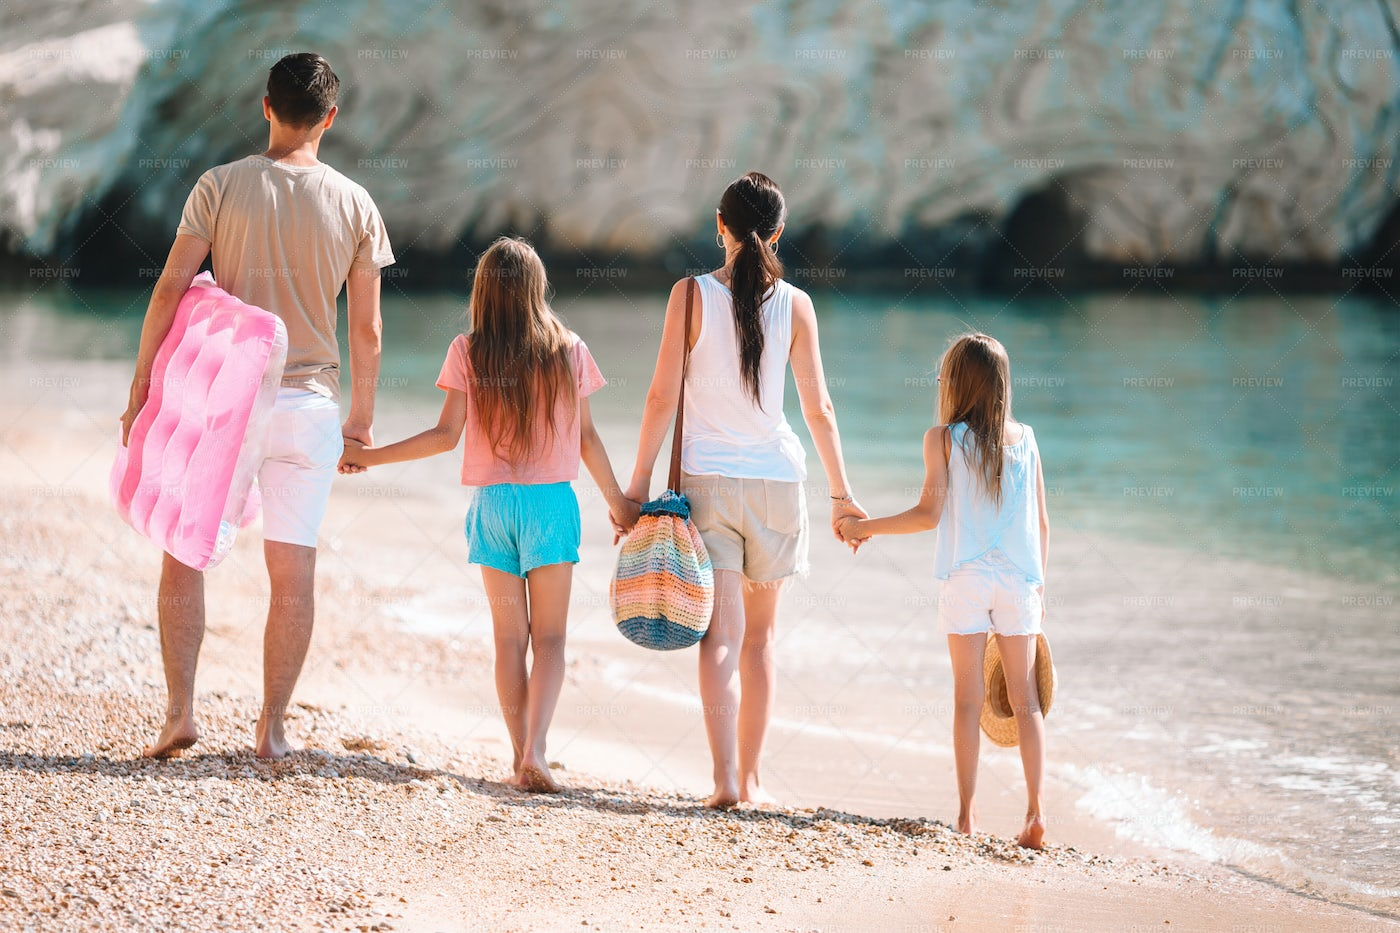 Family Carrying Beach Things: Stock Photos